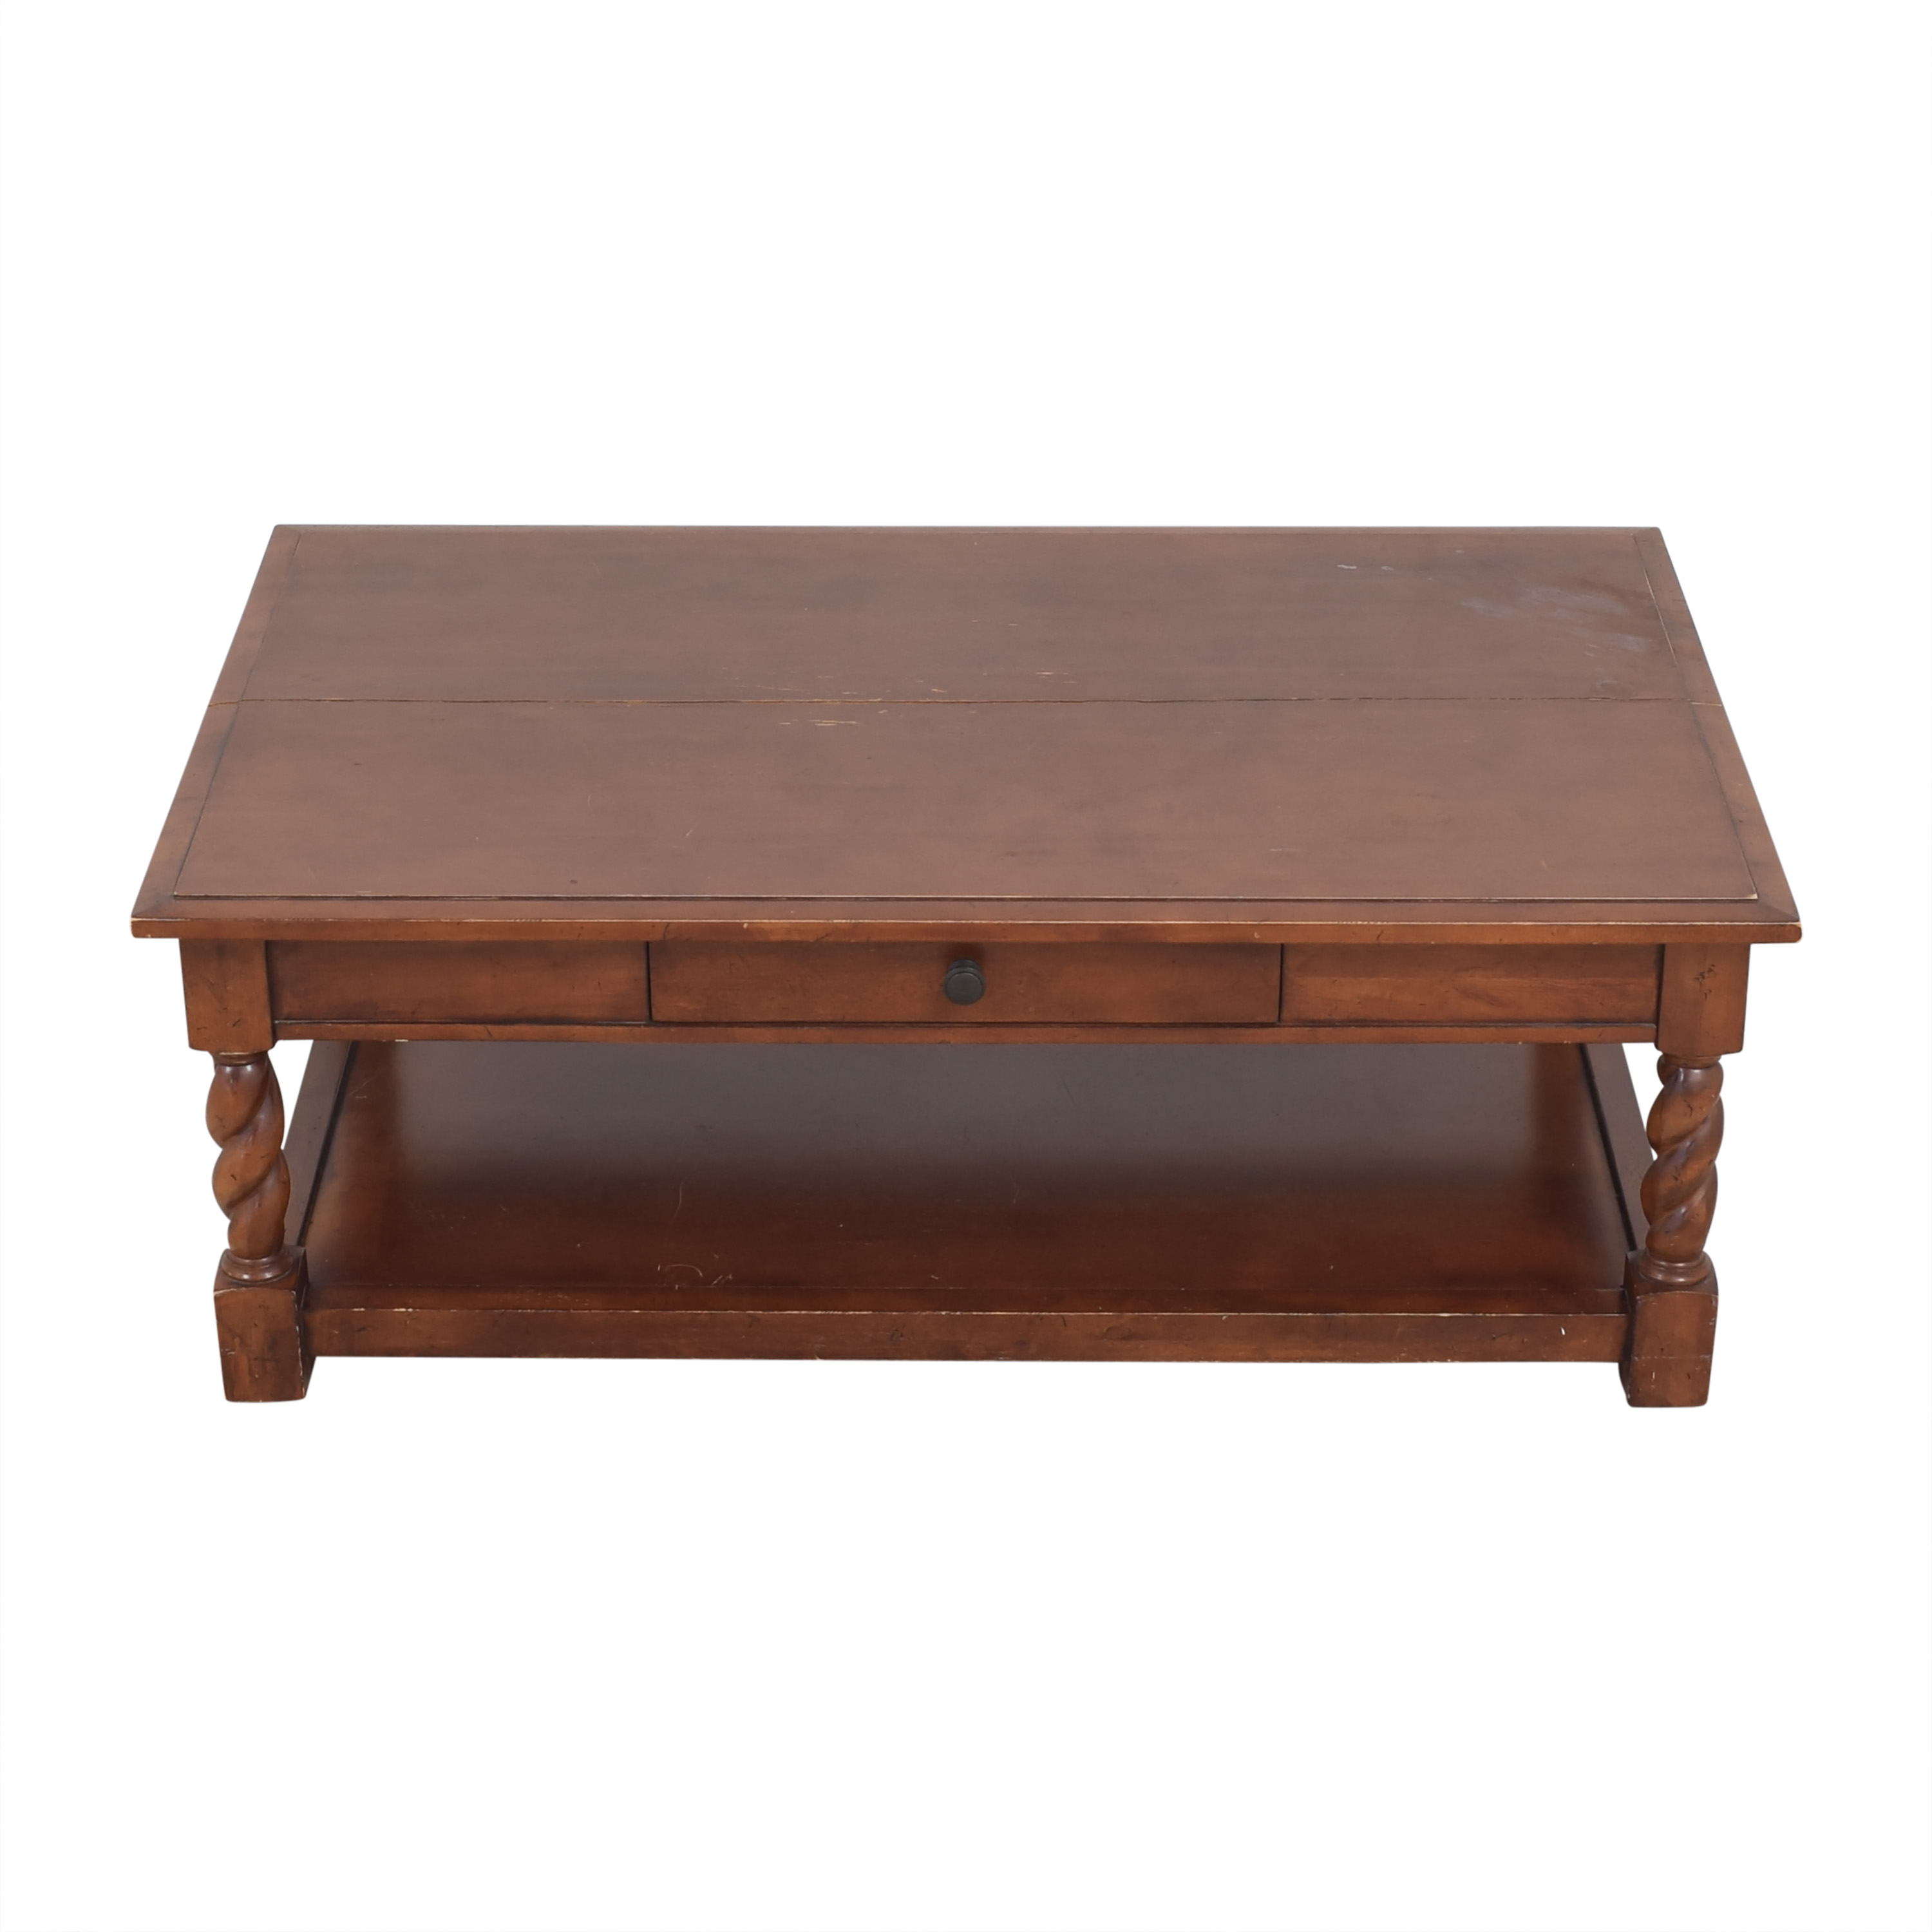 Restoration Hardware Restoration Hardware Two Tier Coffee Table Coffee Tables